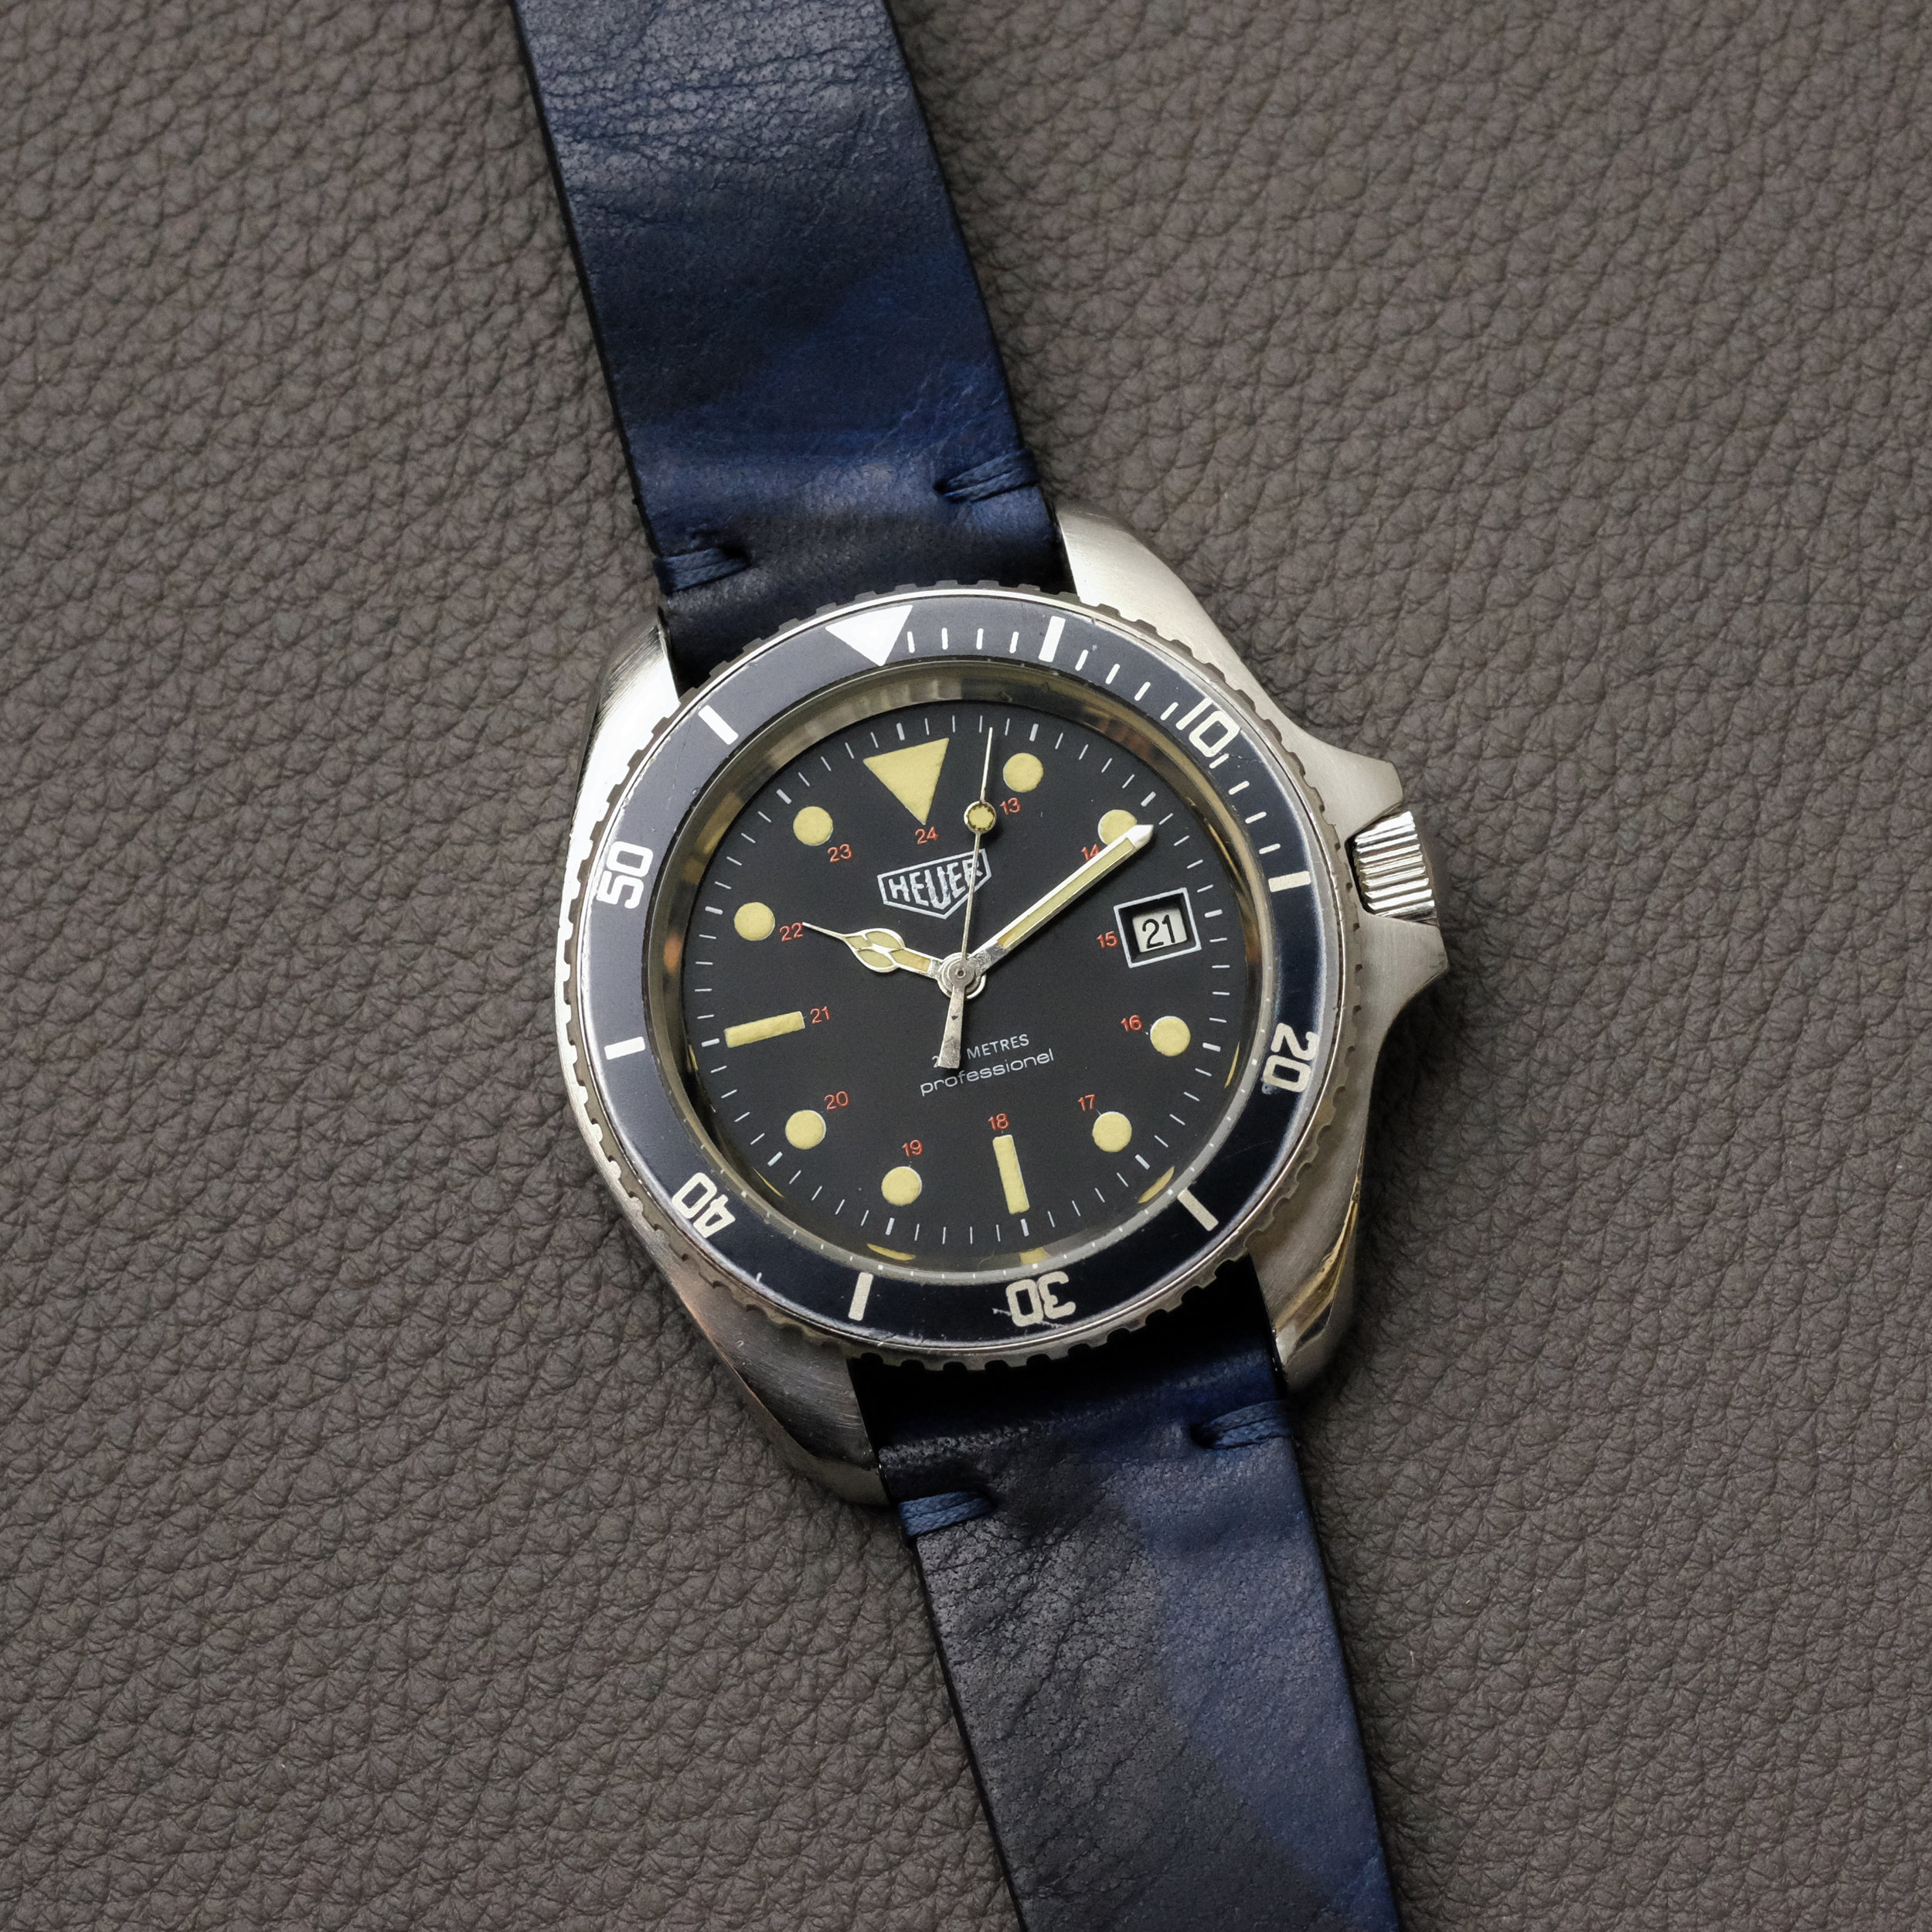 Unidirectional bezel with no lume pip